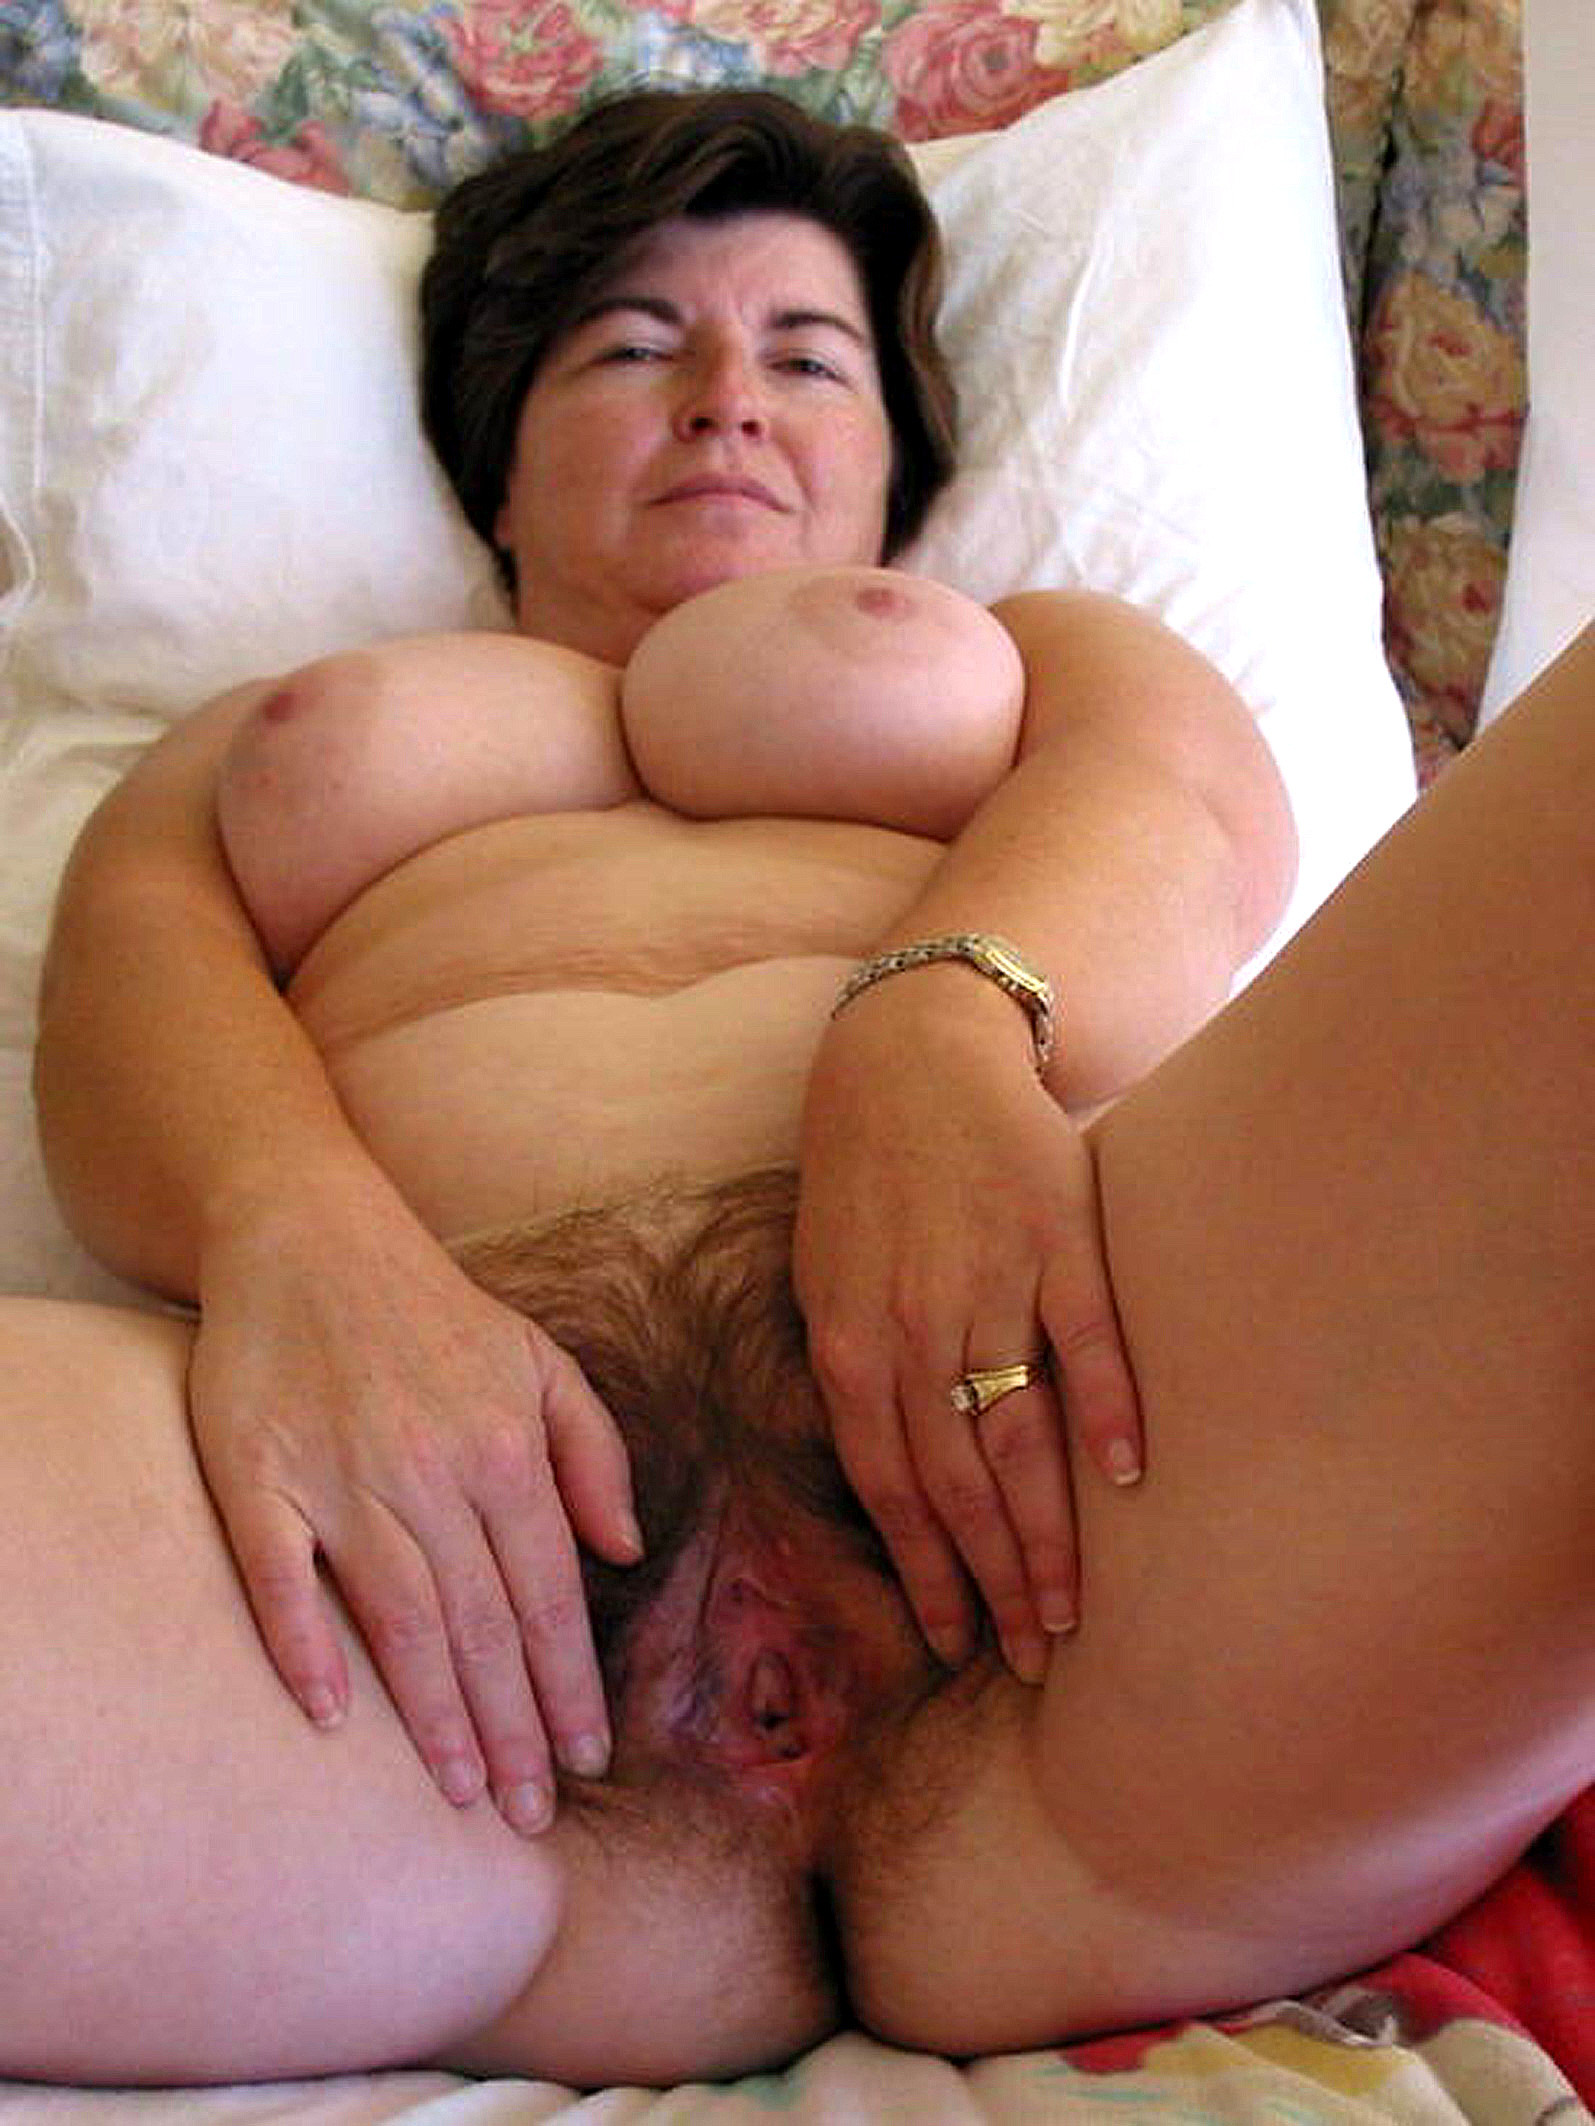 Milf mom tumblr